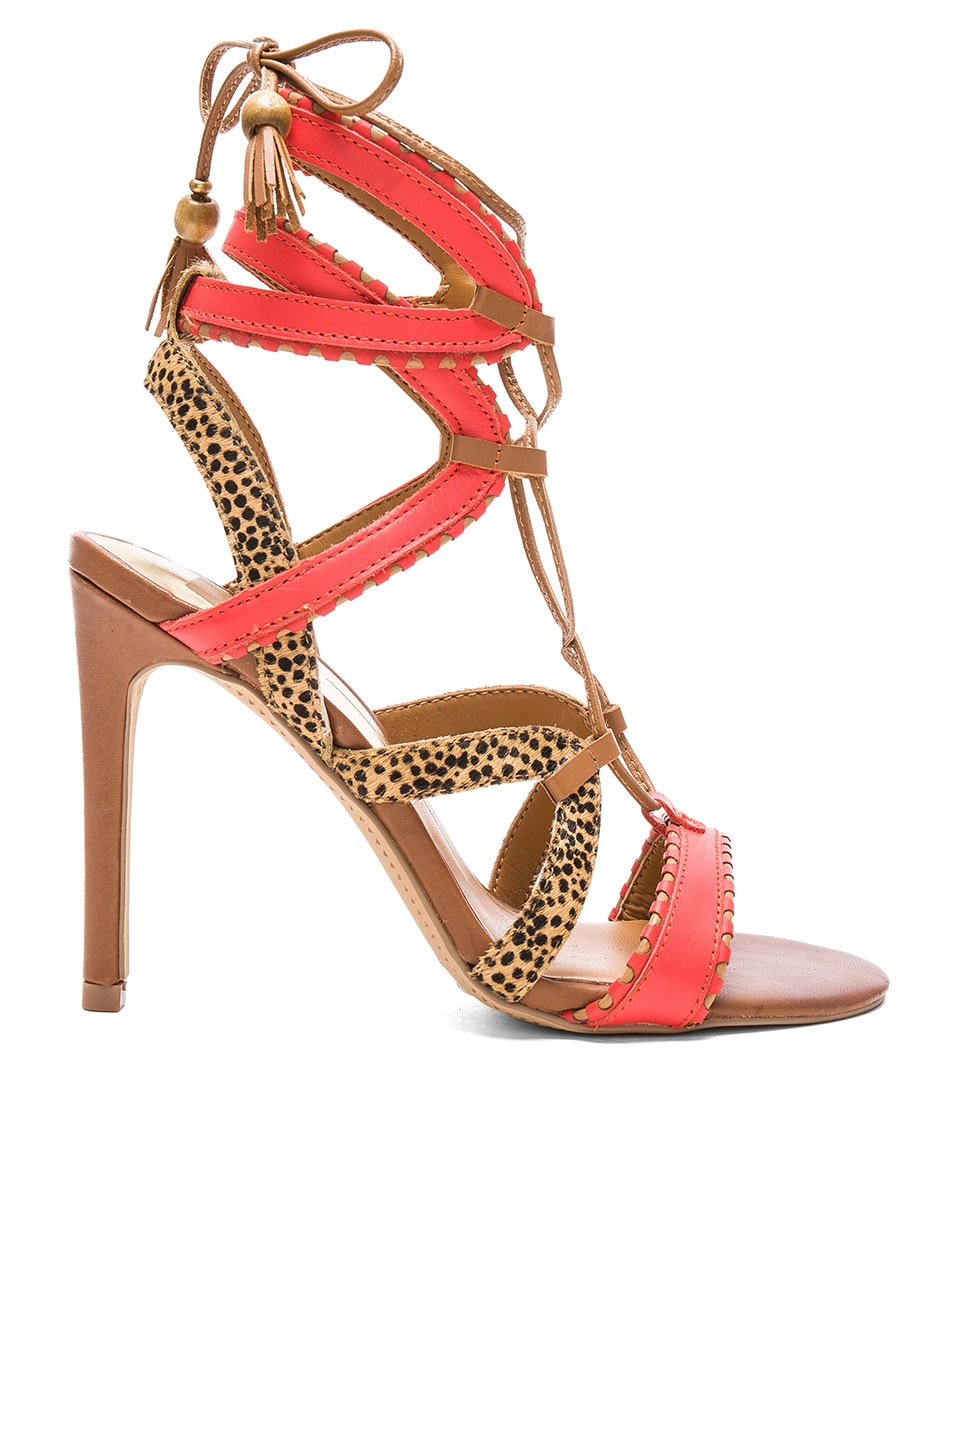 Dolce Vita Haven Cow Hair Heel in Red Orange